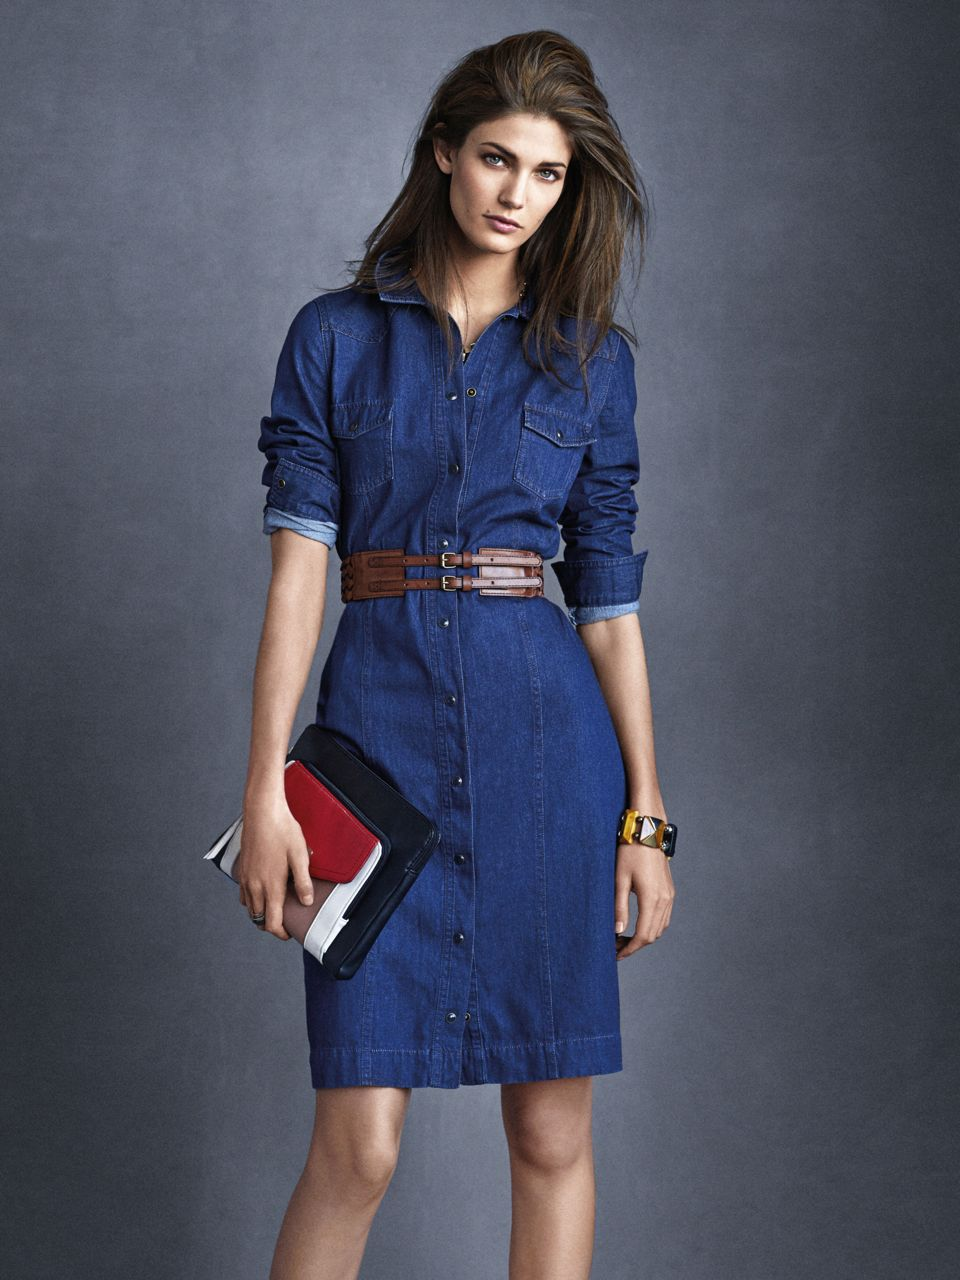 The exciting world of denim dress